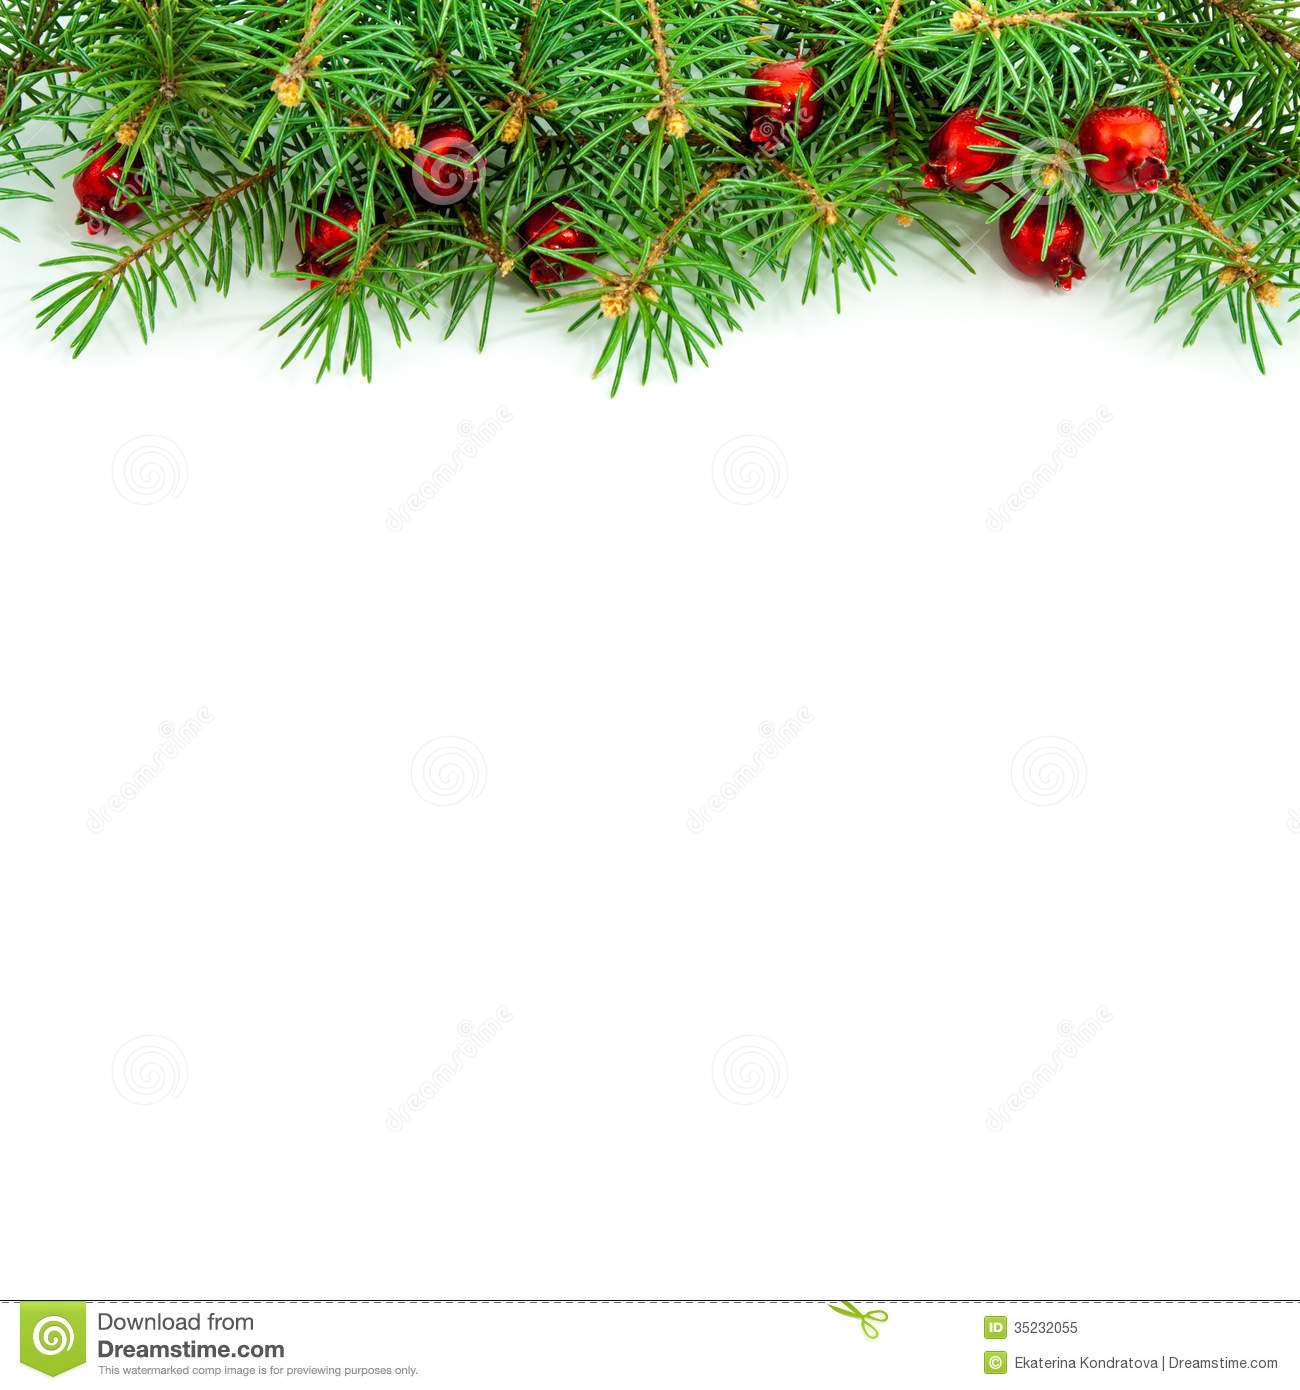 Christmas Border With Red Berries Royalty Free Stock Photo - Image ...